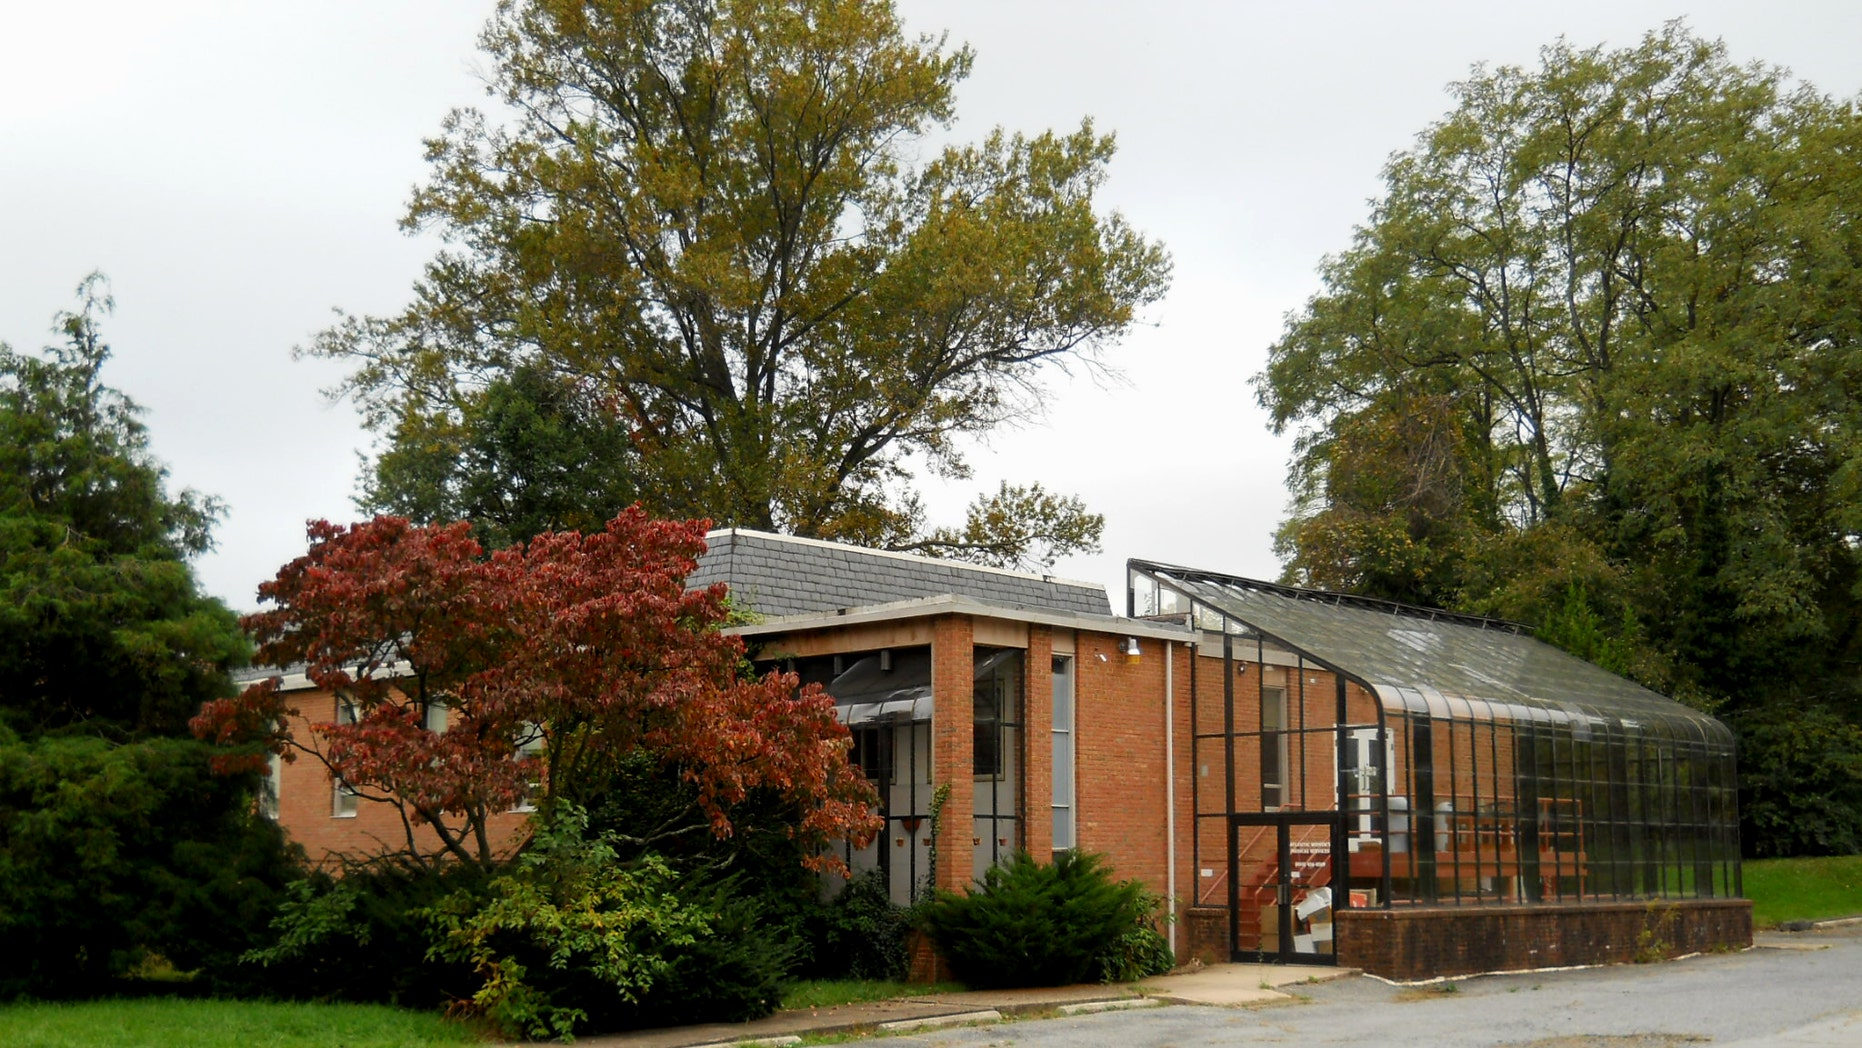 This photo, provided by Lutheran Community Services, is the building in Wilmington, De., where abortionist and convicted murderer Kermit Kosnell once worked part-time. The Delaware-based social services group purchased the building last year to convert it into a center serving low-income families.